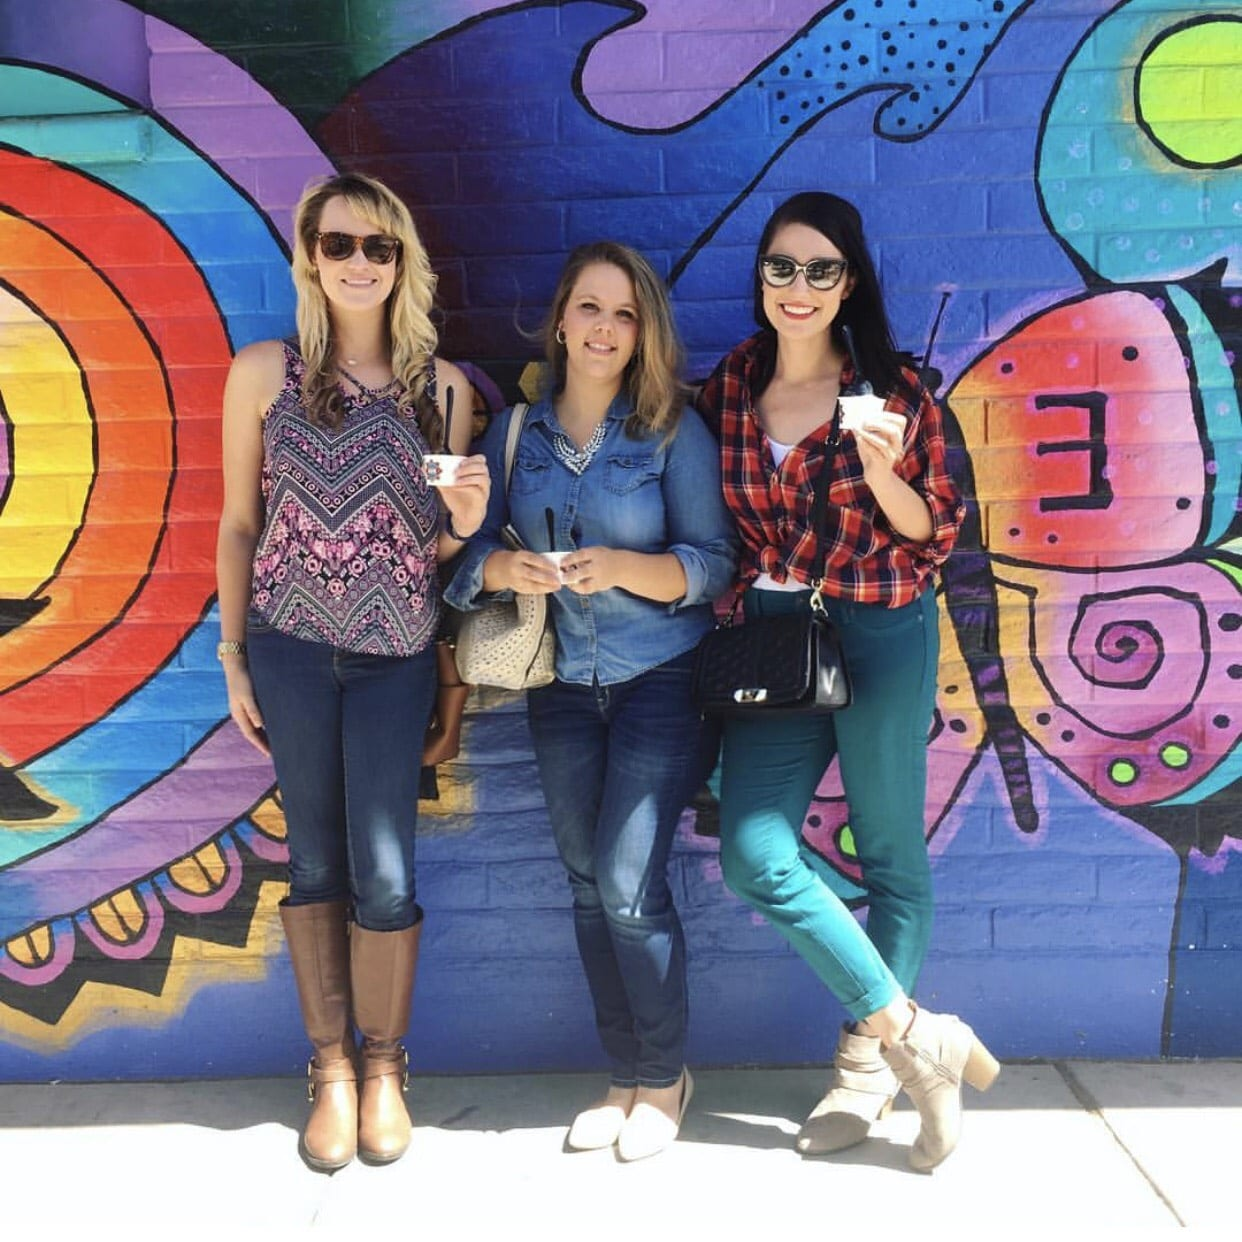 This is a group photo of my friends & I against an art mural in downtown Tucson.